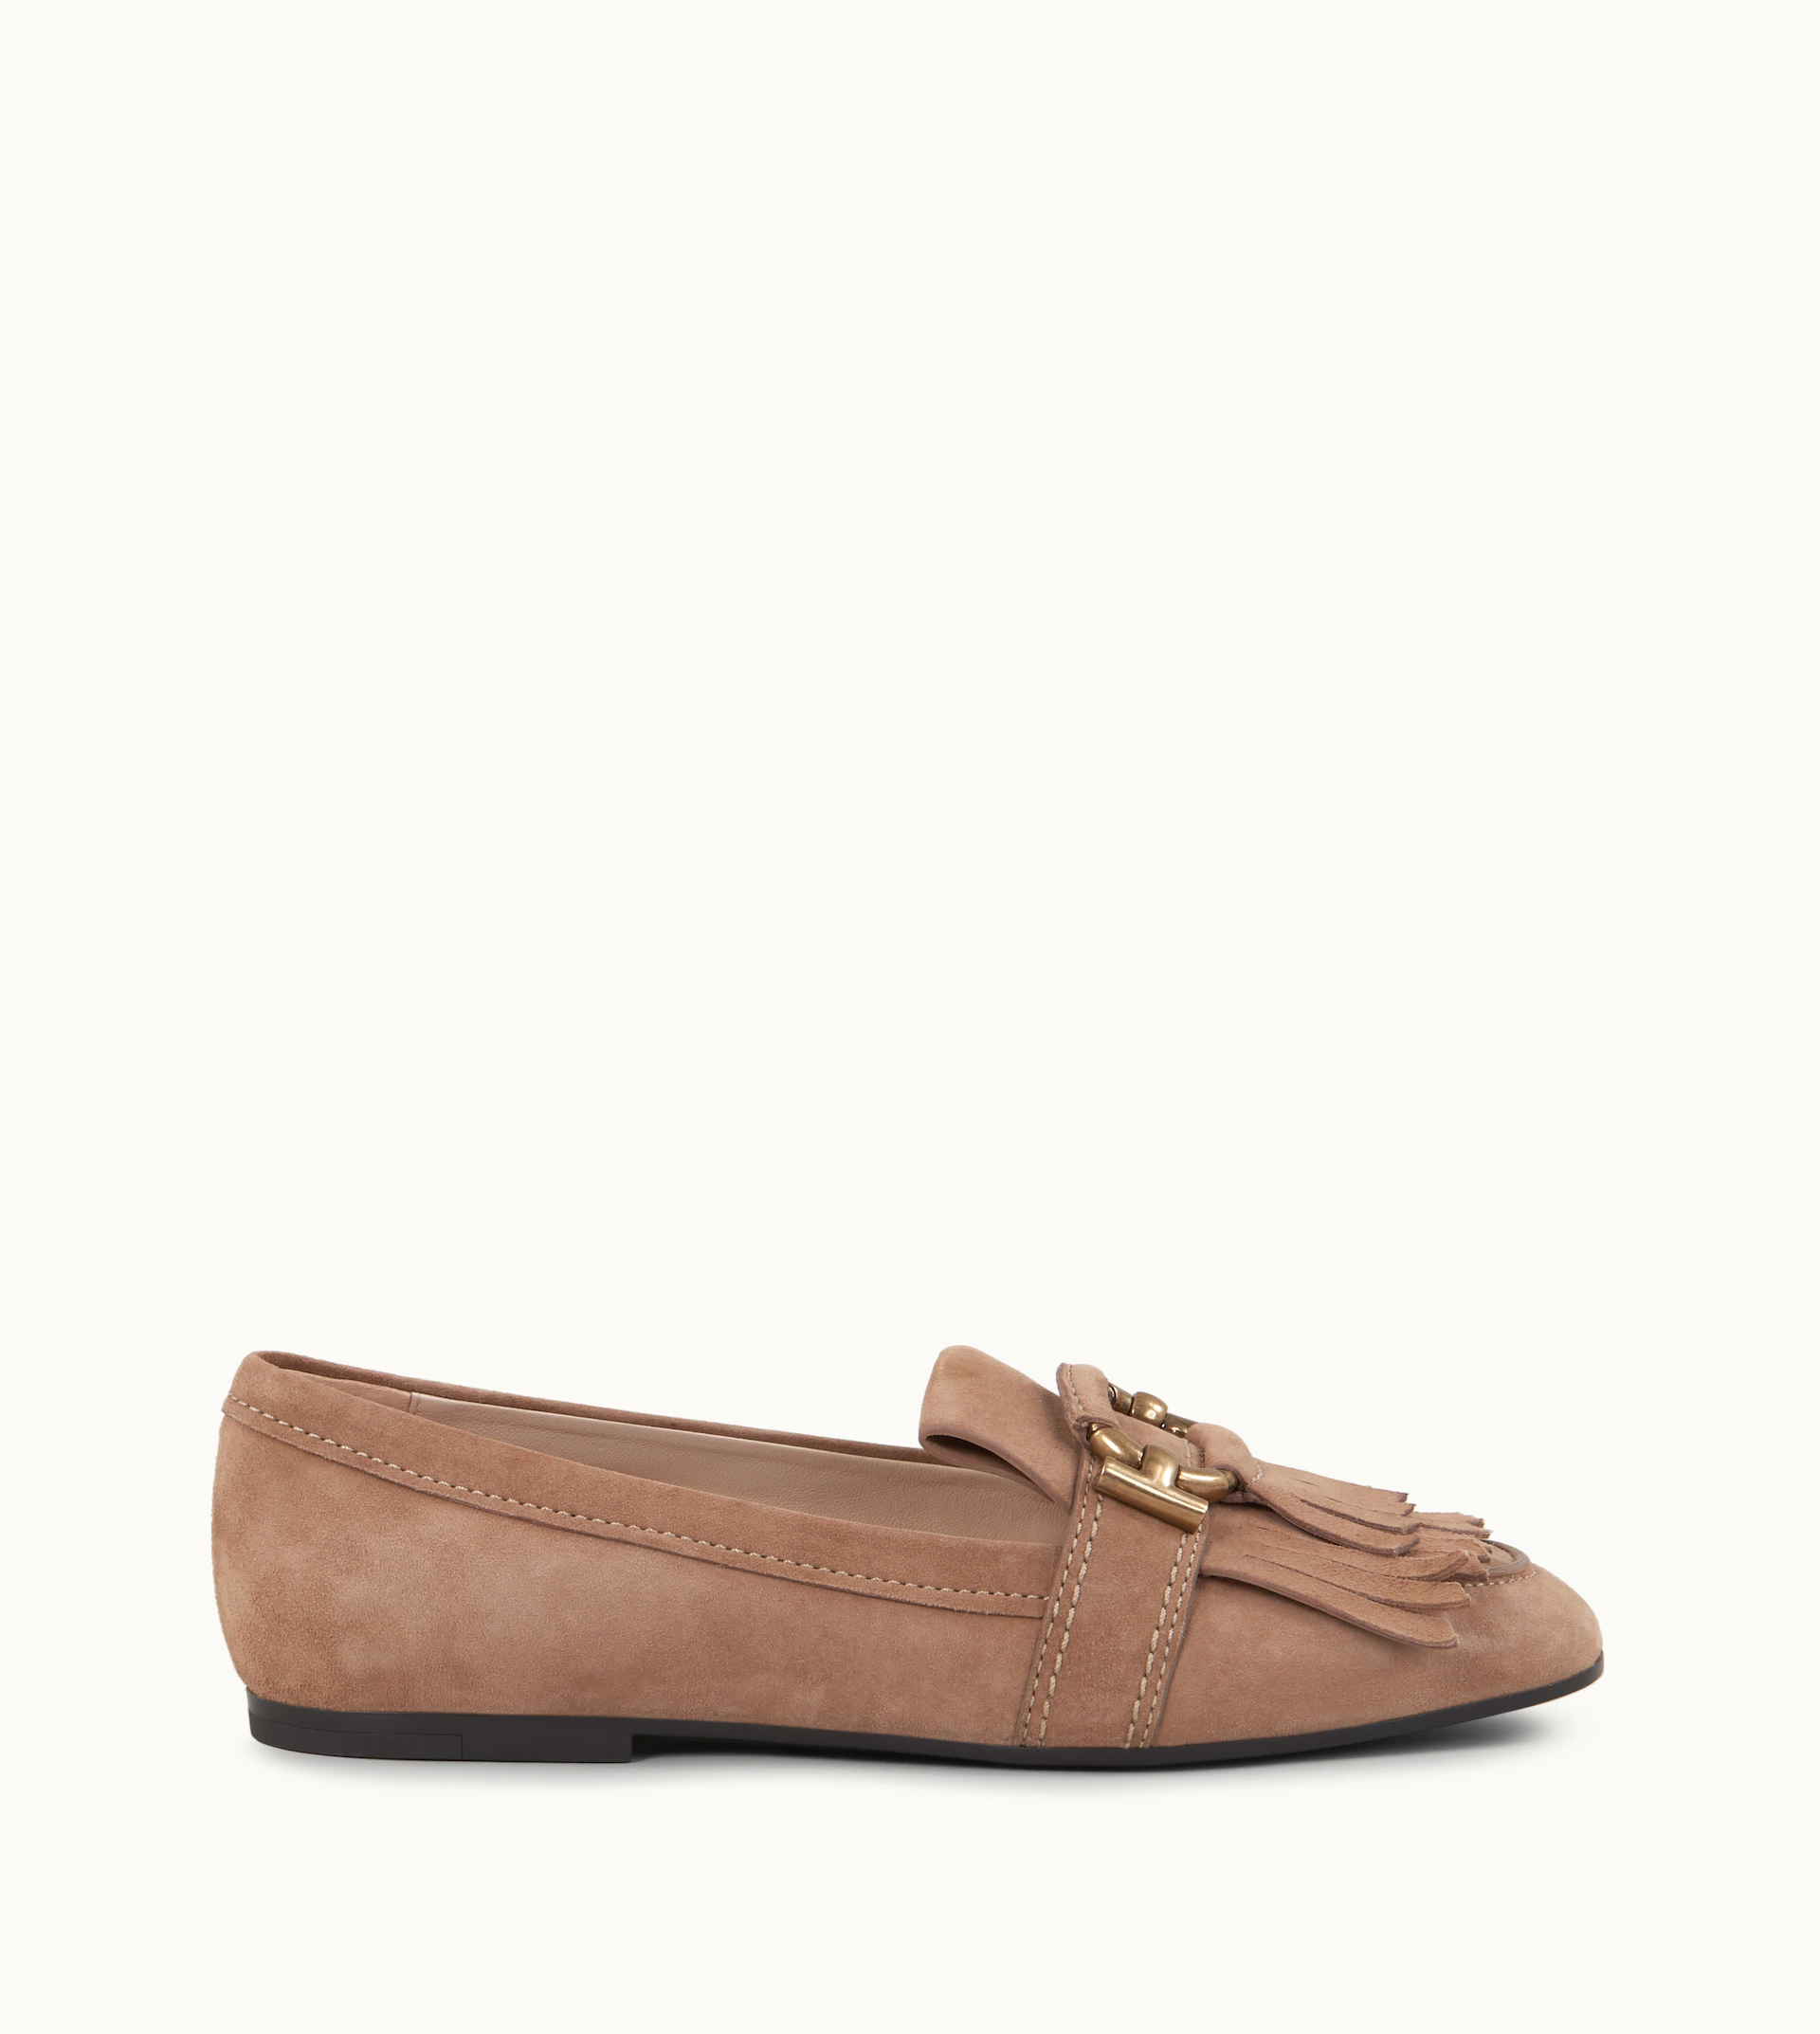 2655260c3029b Tod's Women's Suede Loafers Moccasins Gommini In Brown | ModeSens